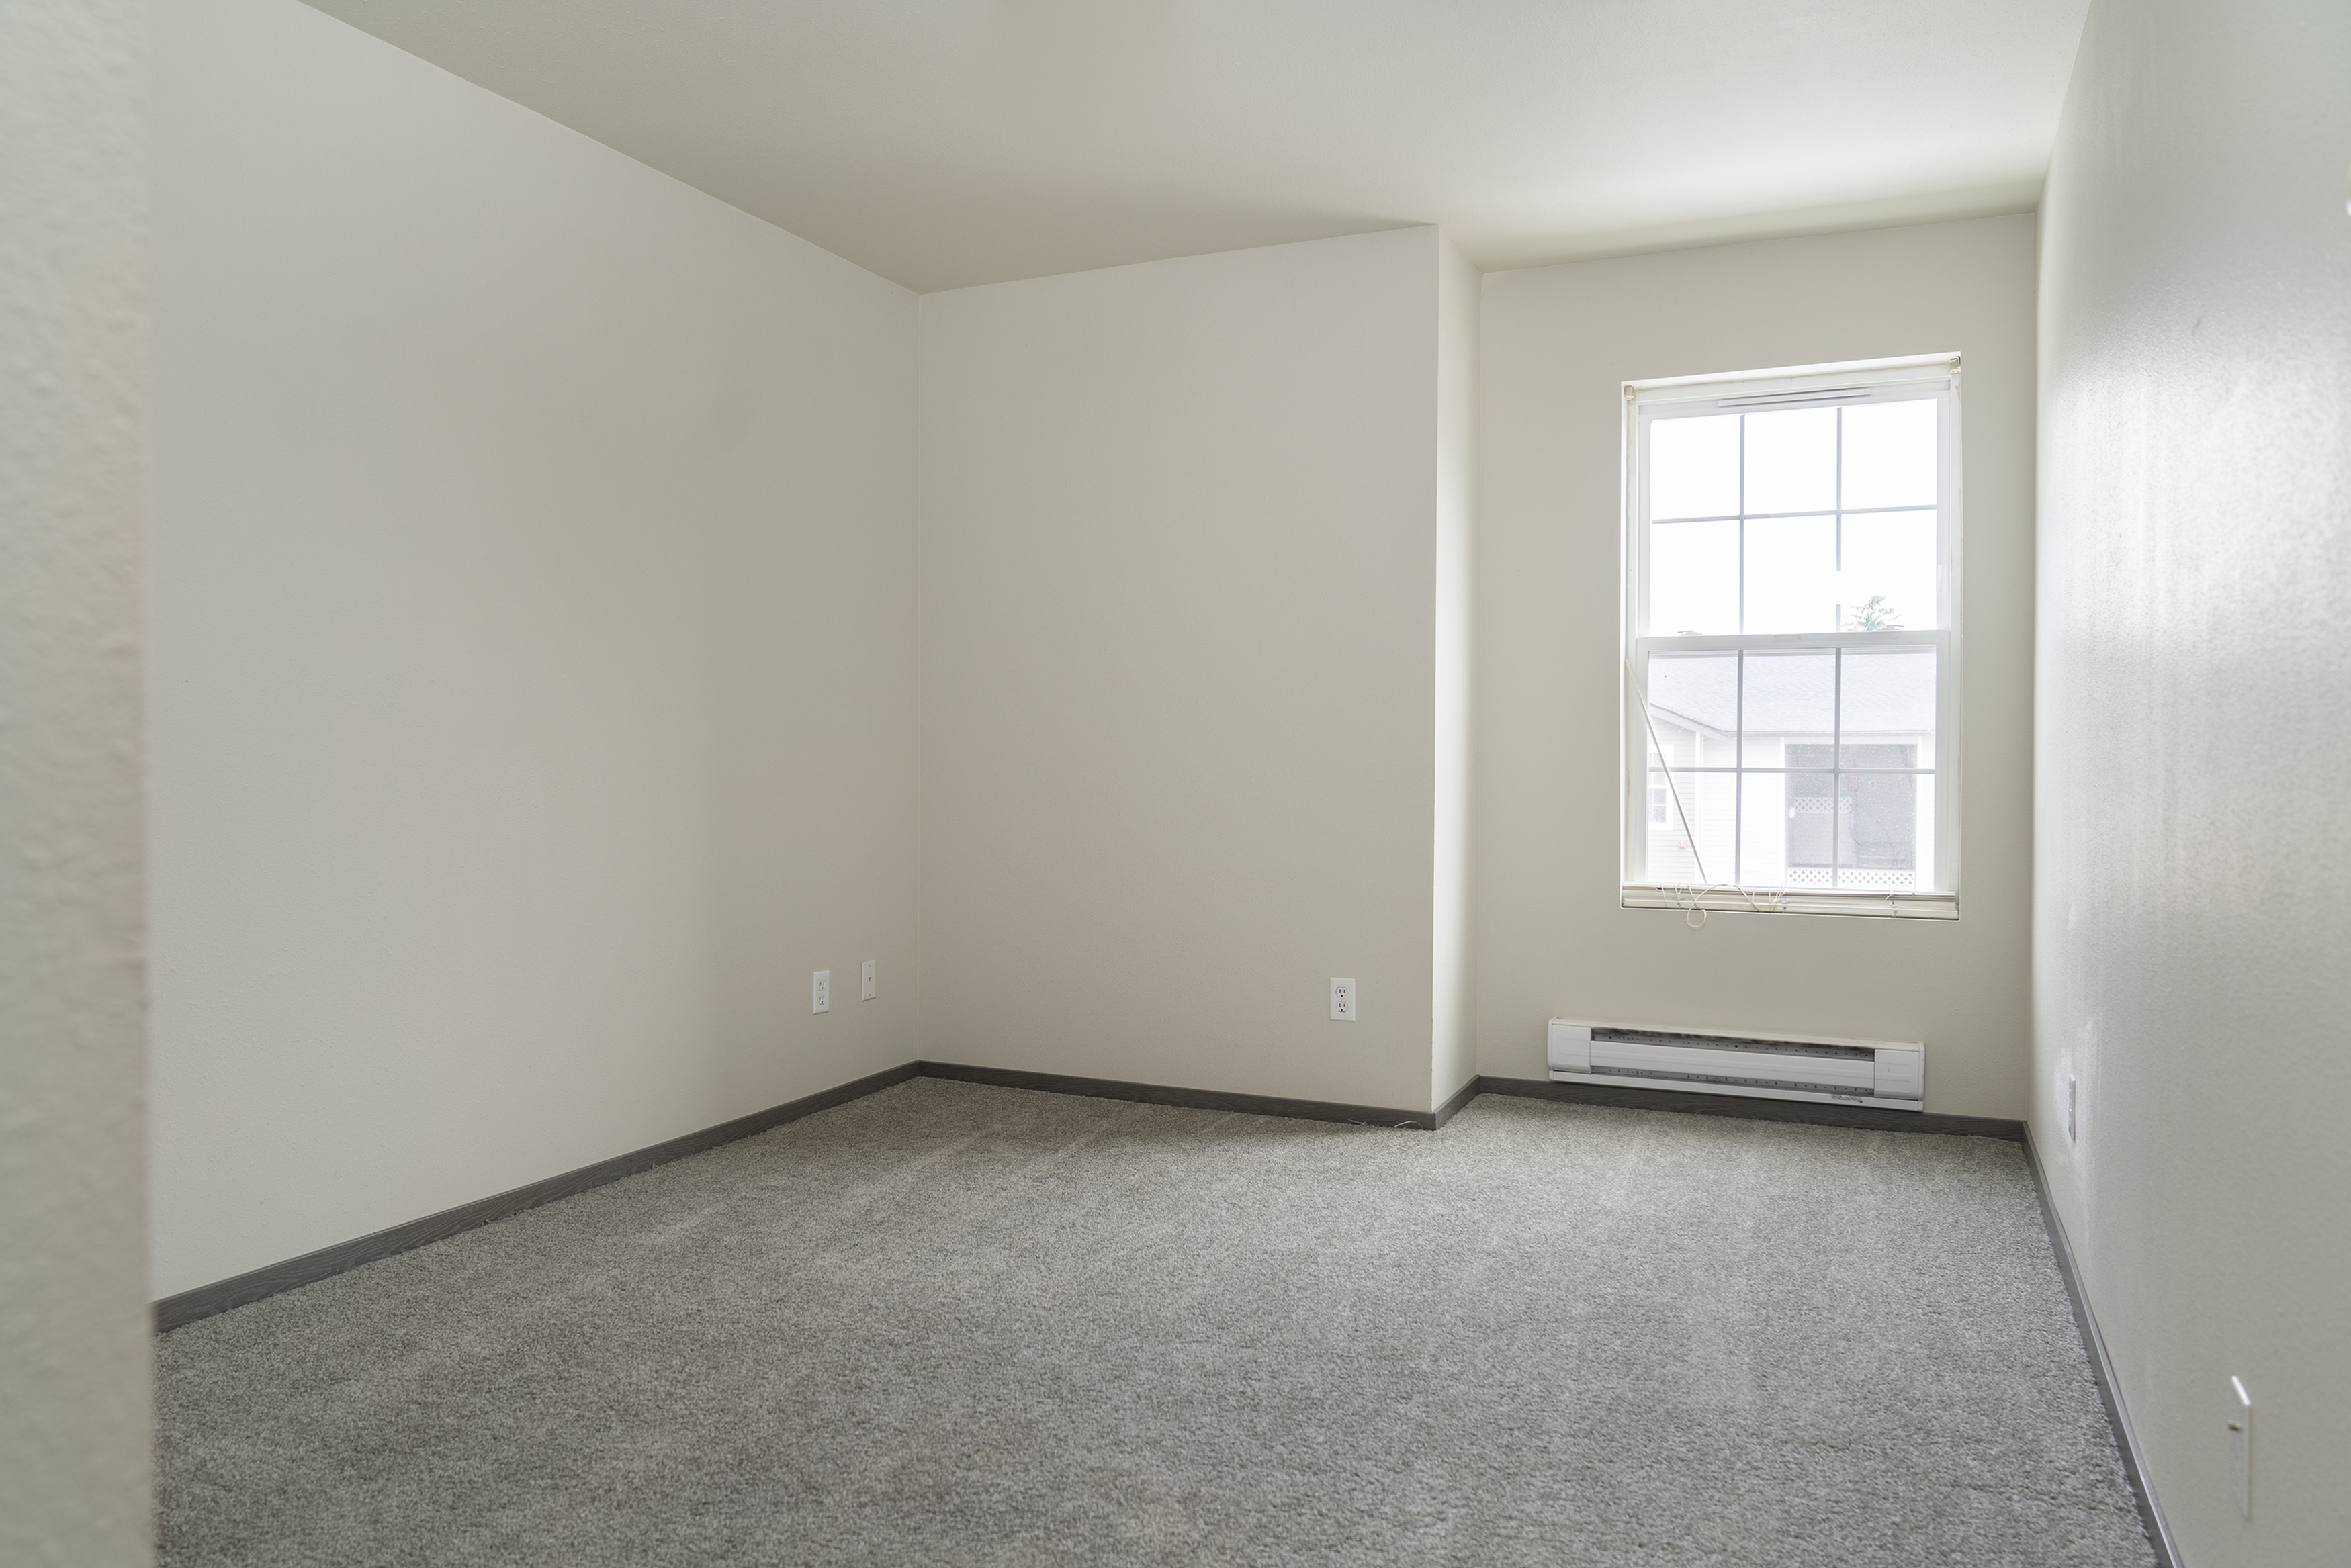 Image of Upgraded Flooring and Carpets for Nantucket Gate